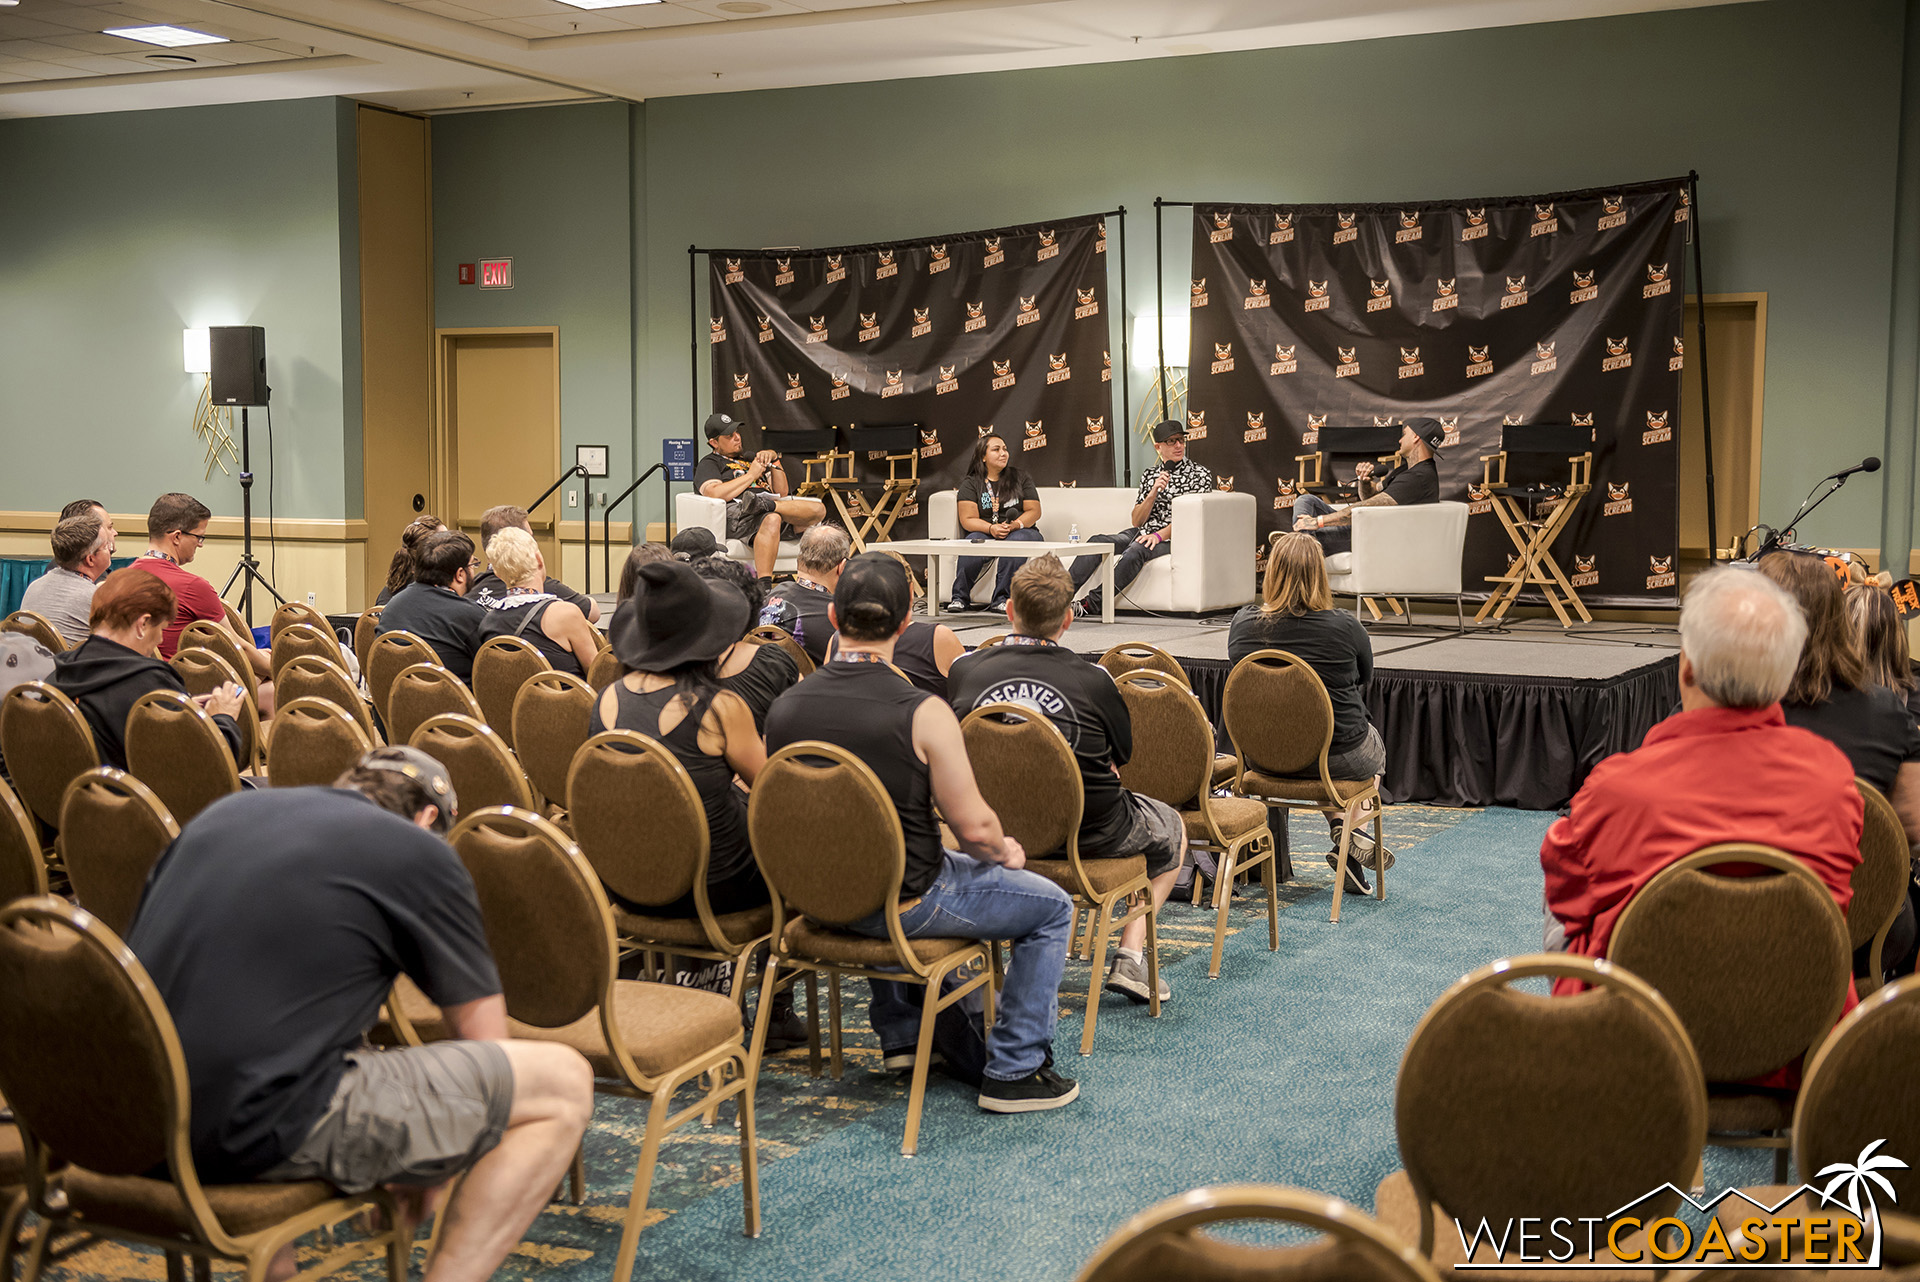 The Podcast Room attracted a small but interested crowd for the discussion.